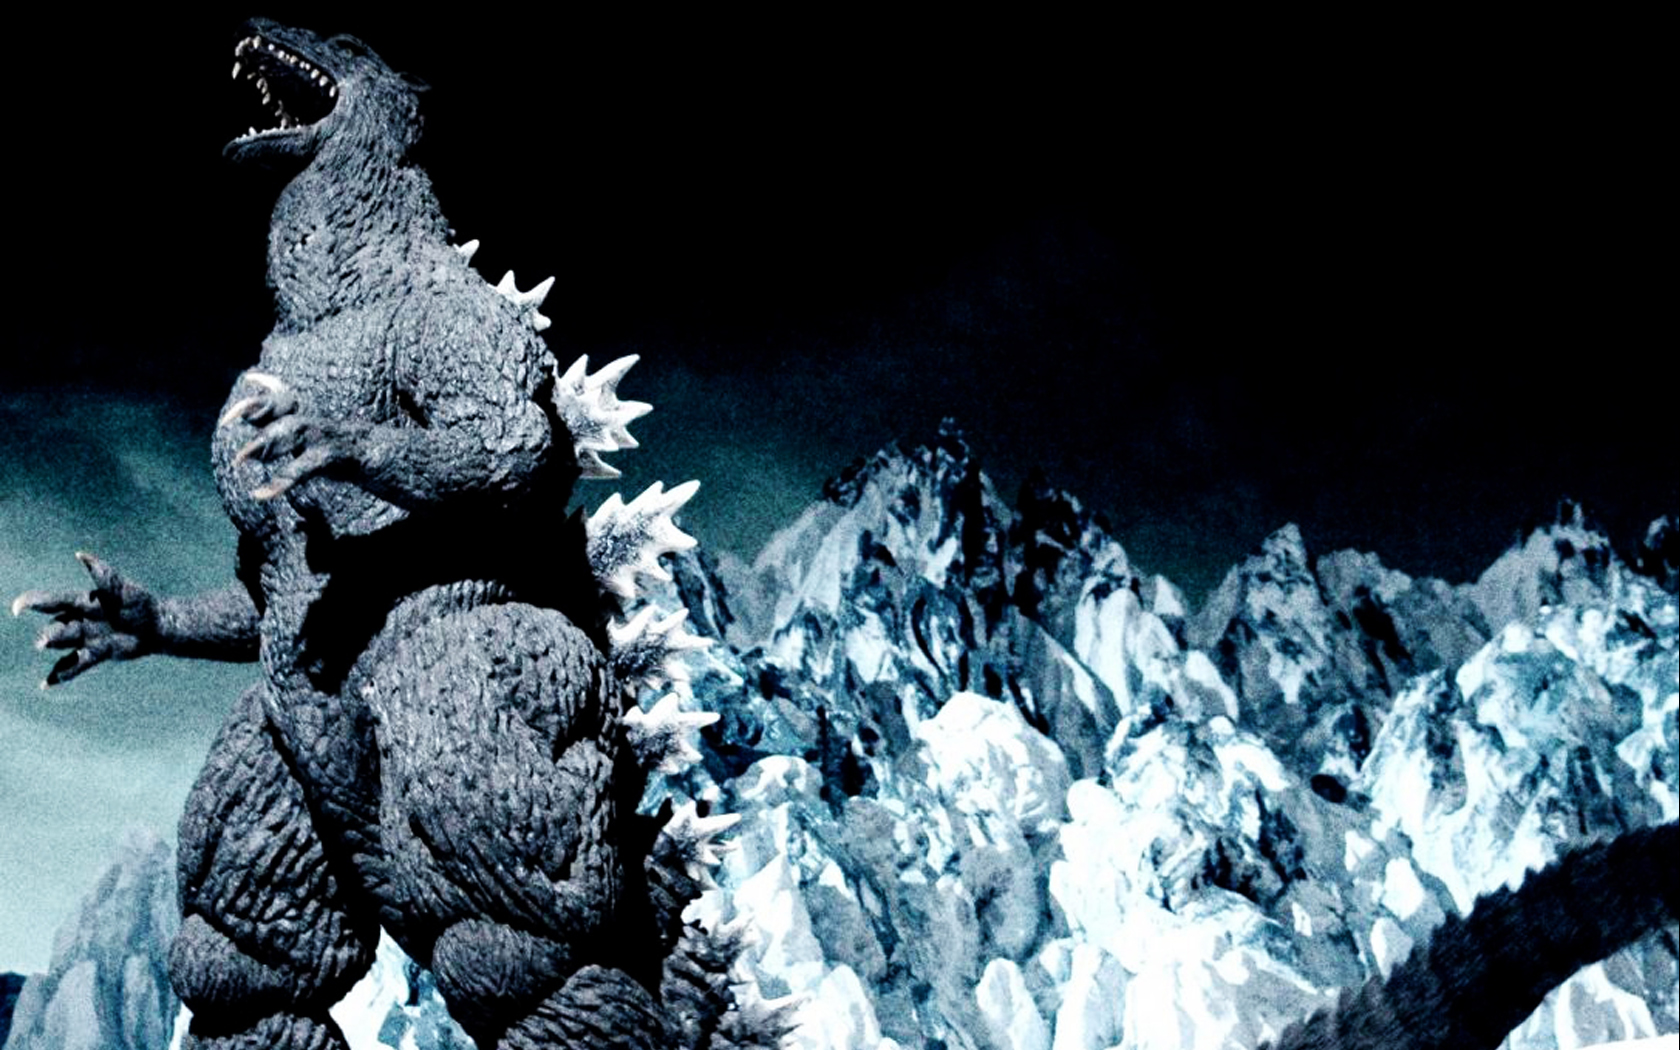 Godzilla Wallpaper Wallpaper 1680x1050 Godzilla Wallpaper By 1680x1050